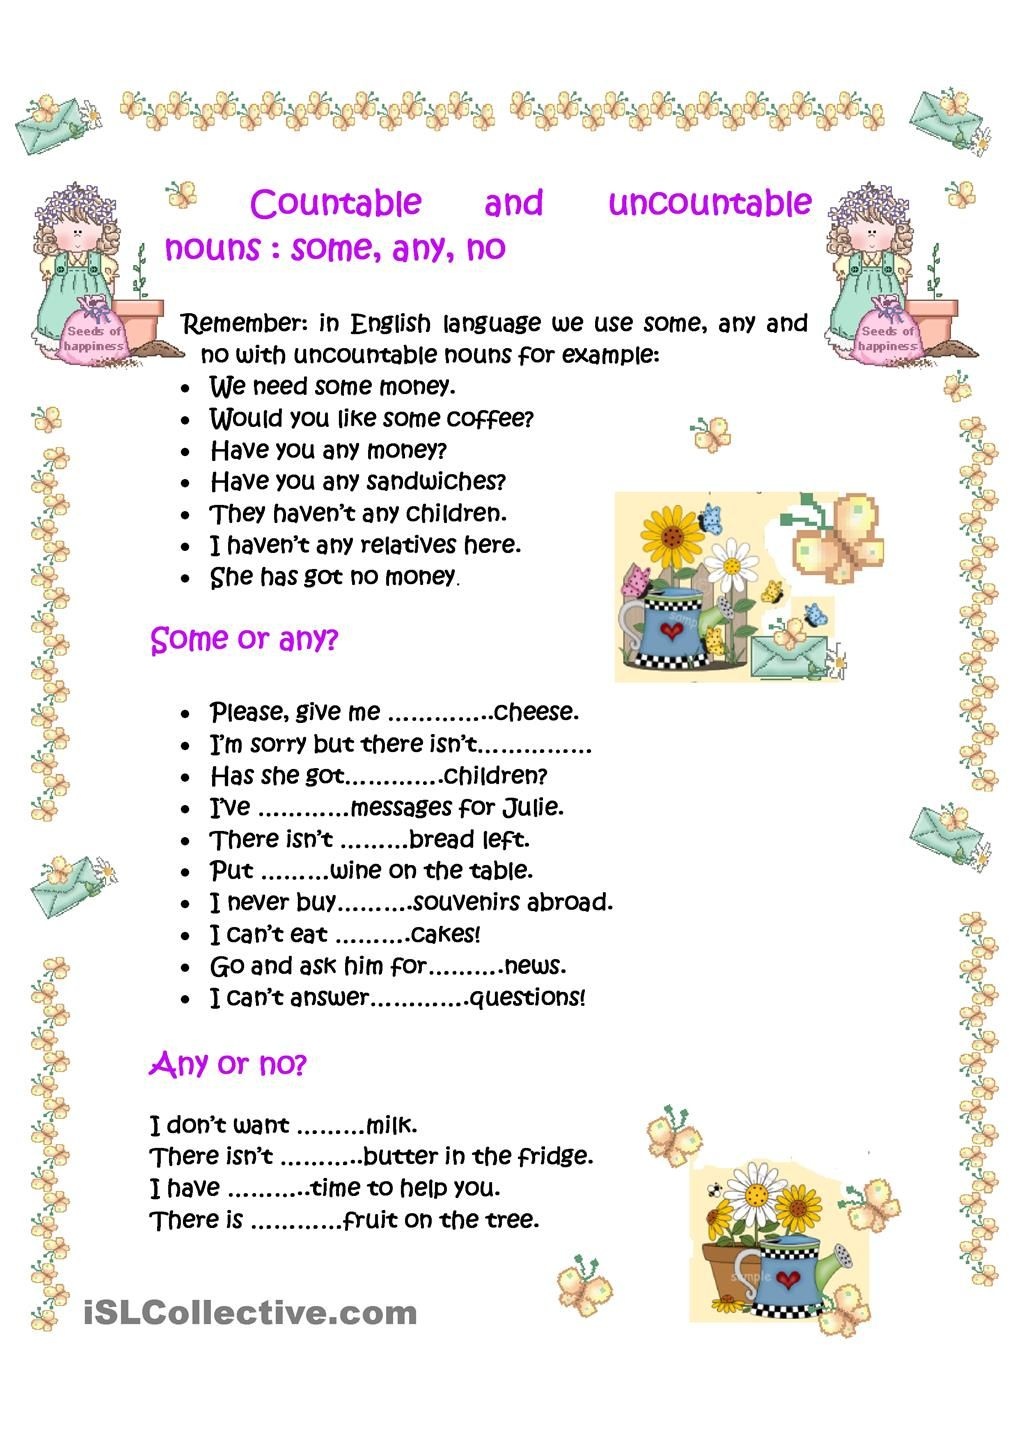 Worksheet Countable Nouns And Uncountable Nouns Worksheet Carlos